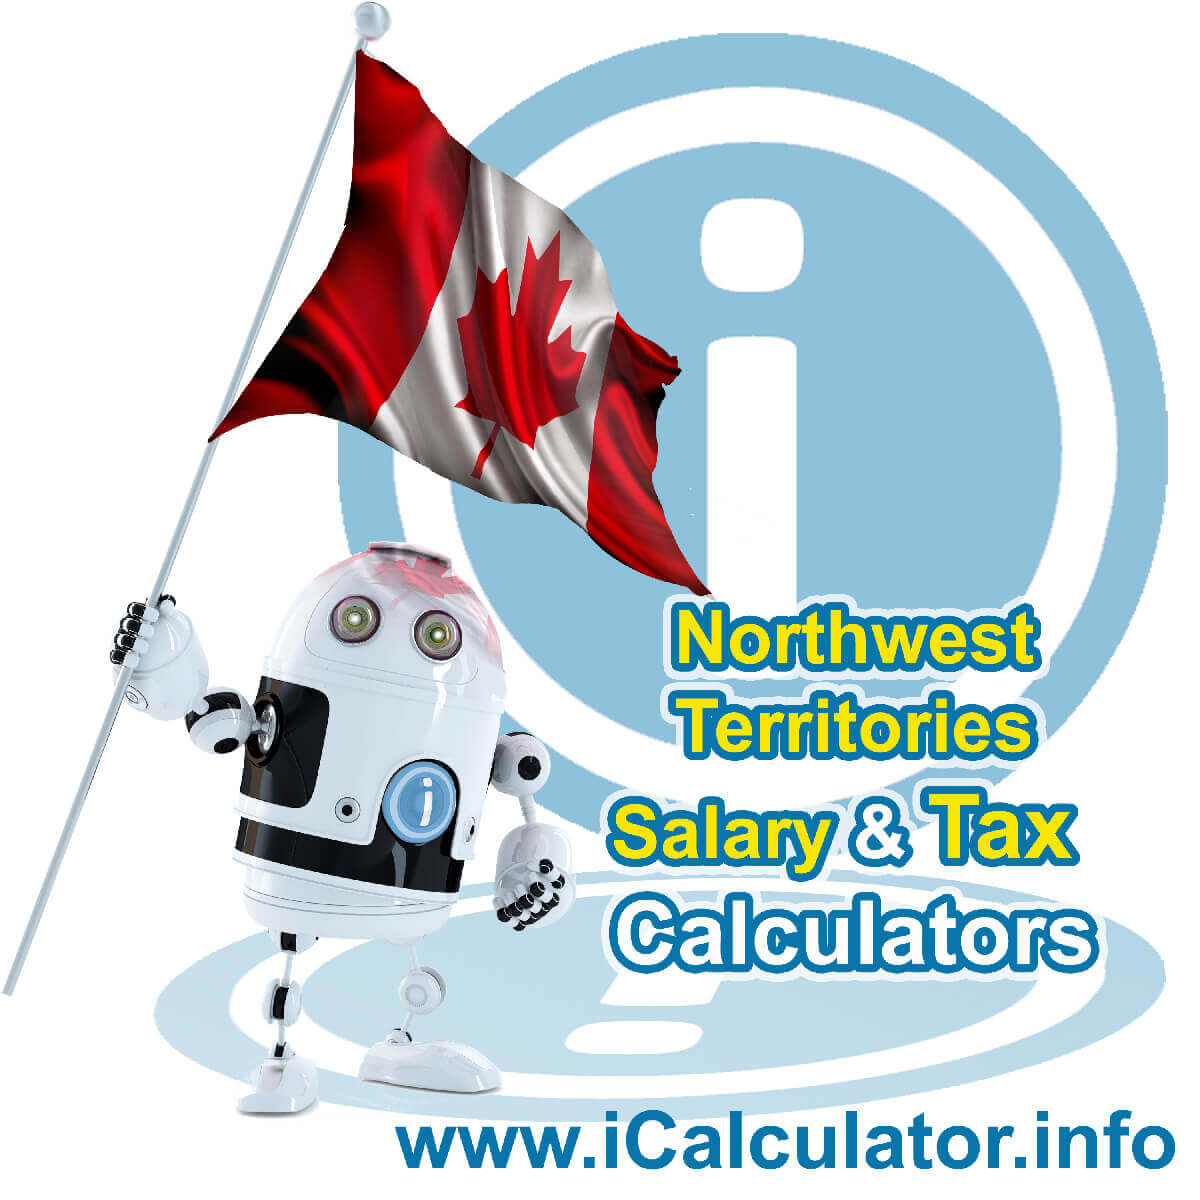 Northwest Territories 2020 Salary Comparison Calculator. This image shows the Northwest Territories flag and information relating to the tax formula used in the Northwest Territories 2020 Salary Comparison Calculator